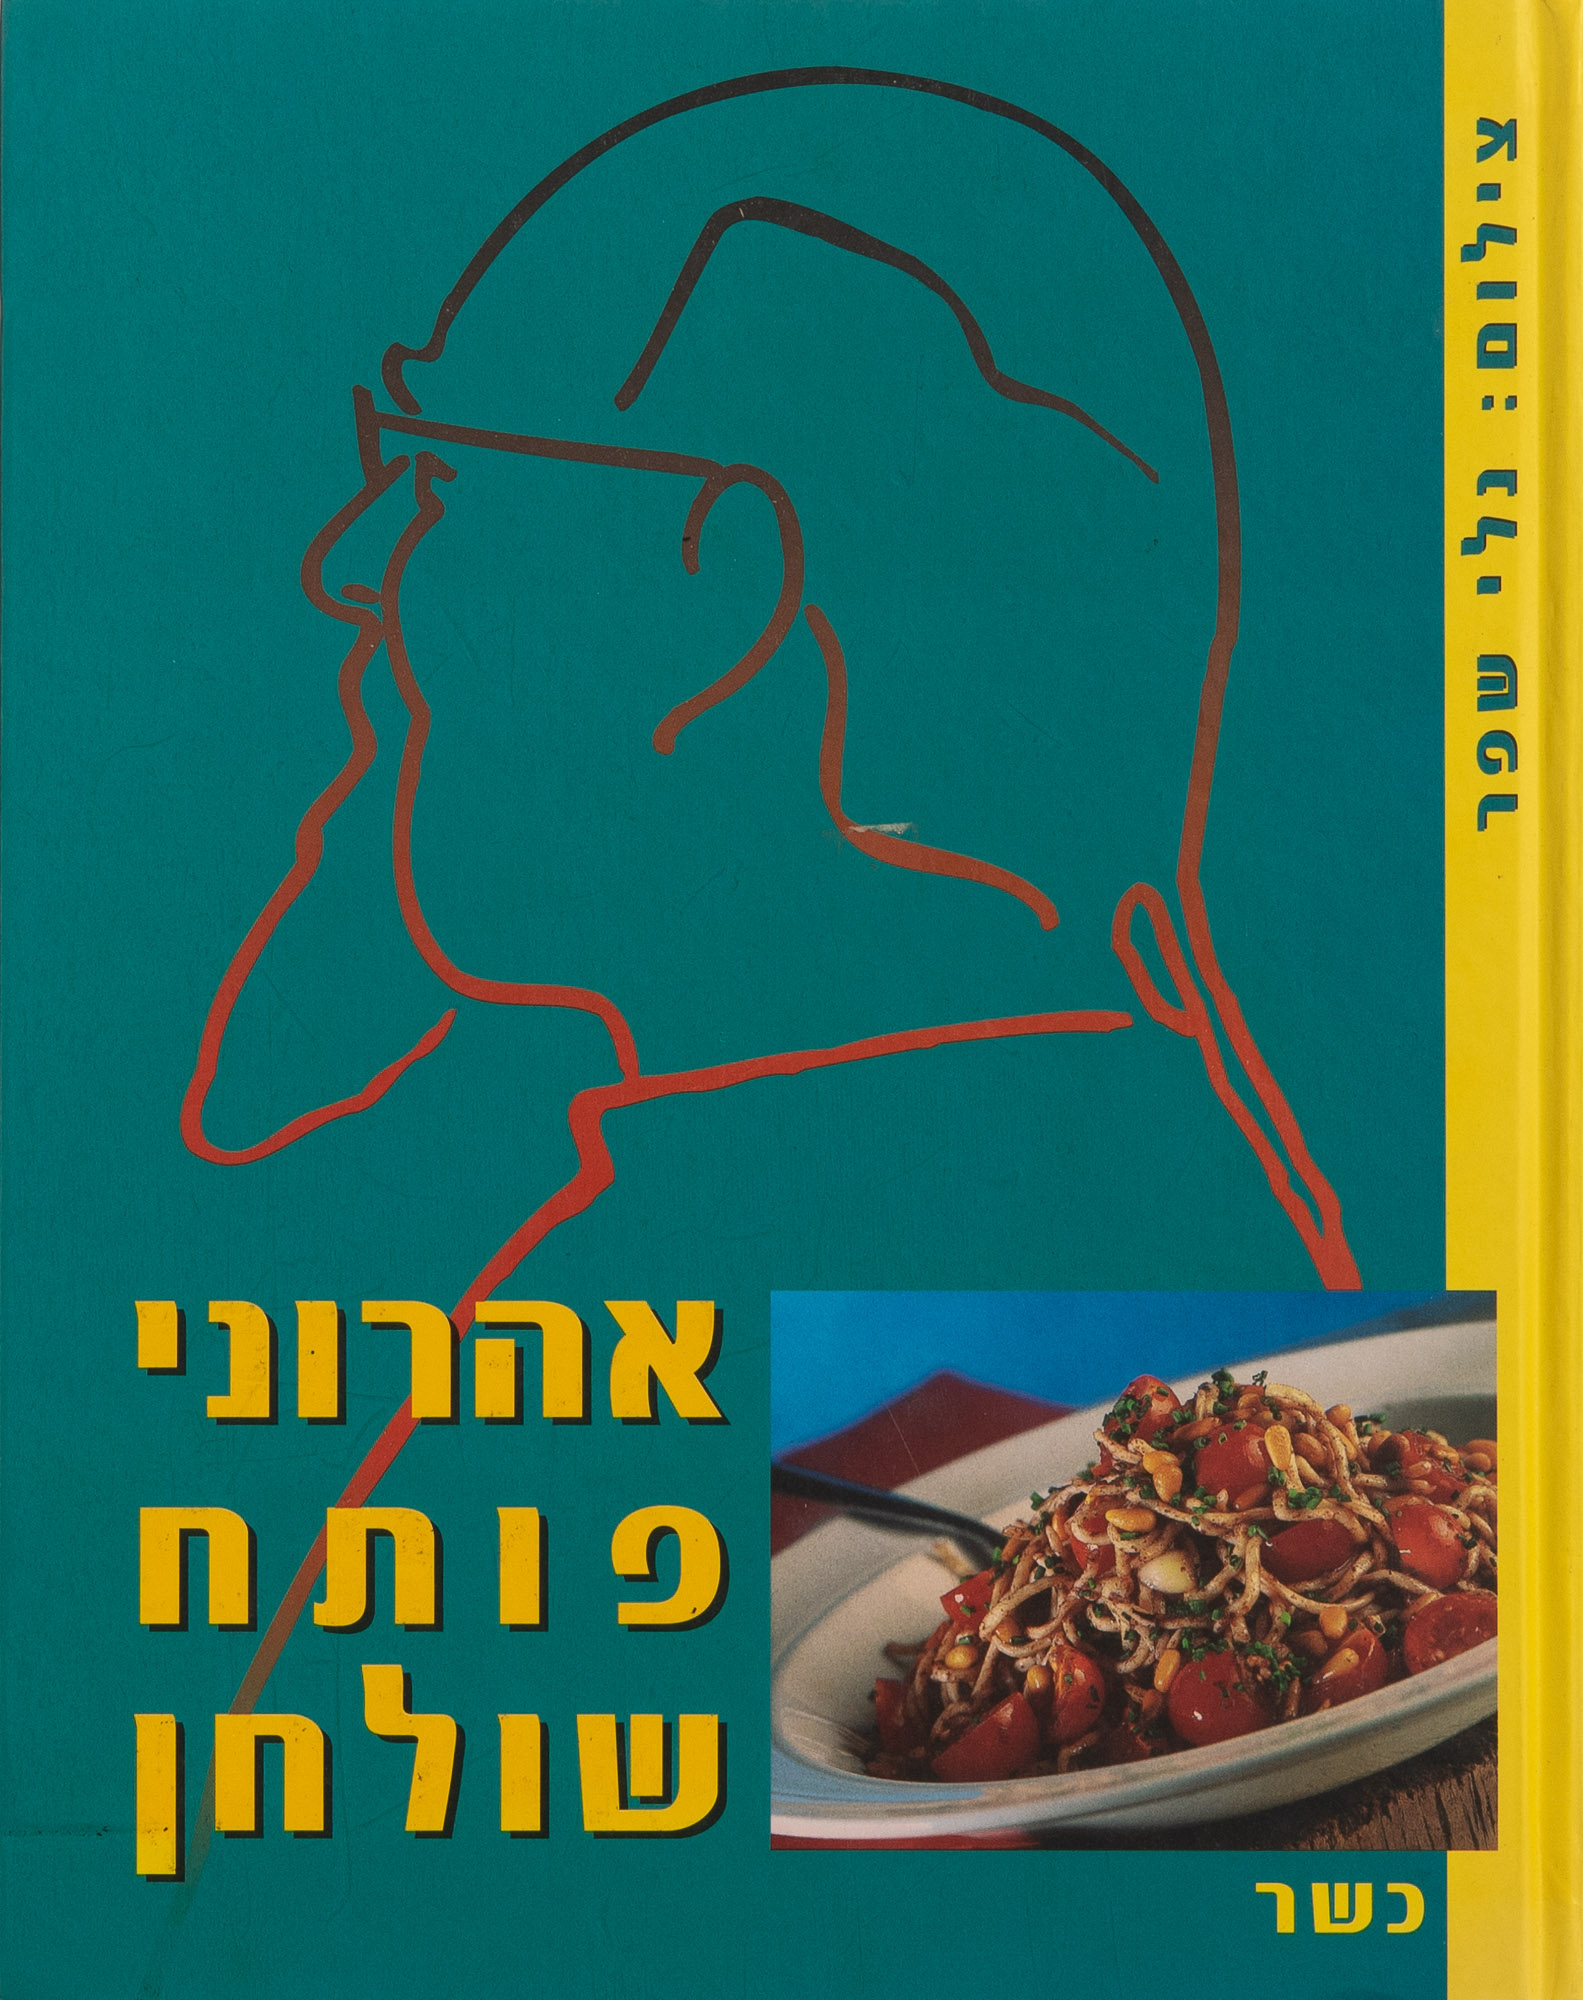 The cover of the Israeli cookbook Aharoni's Open Table